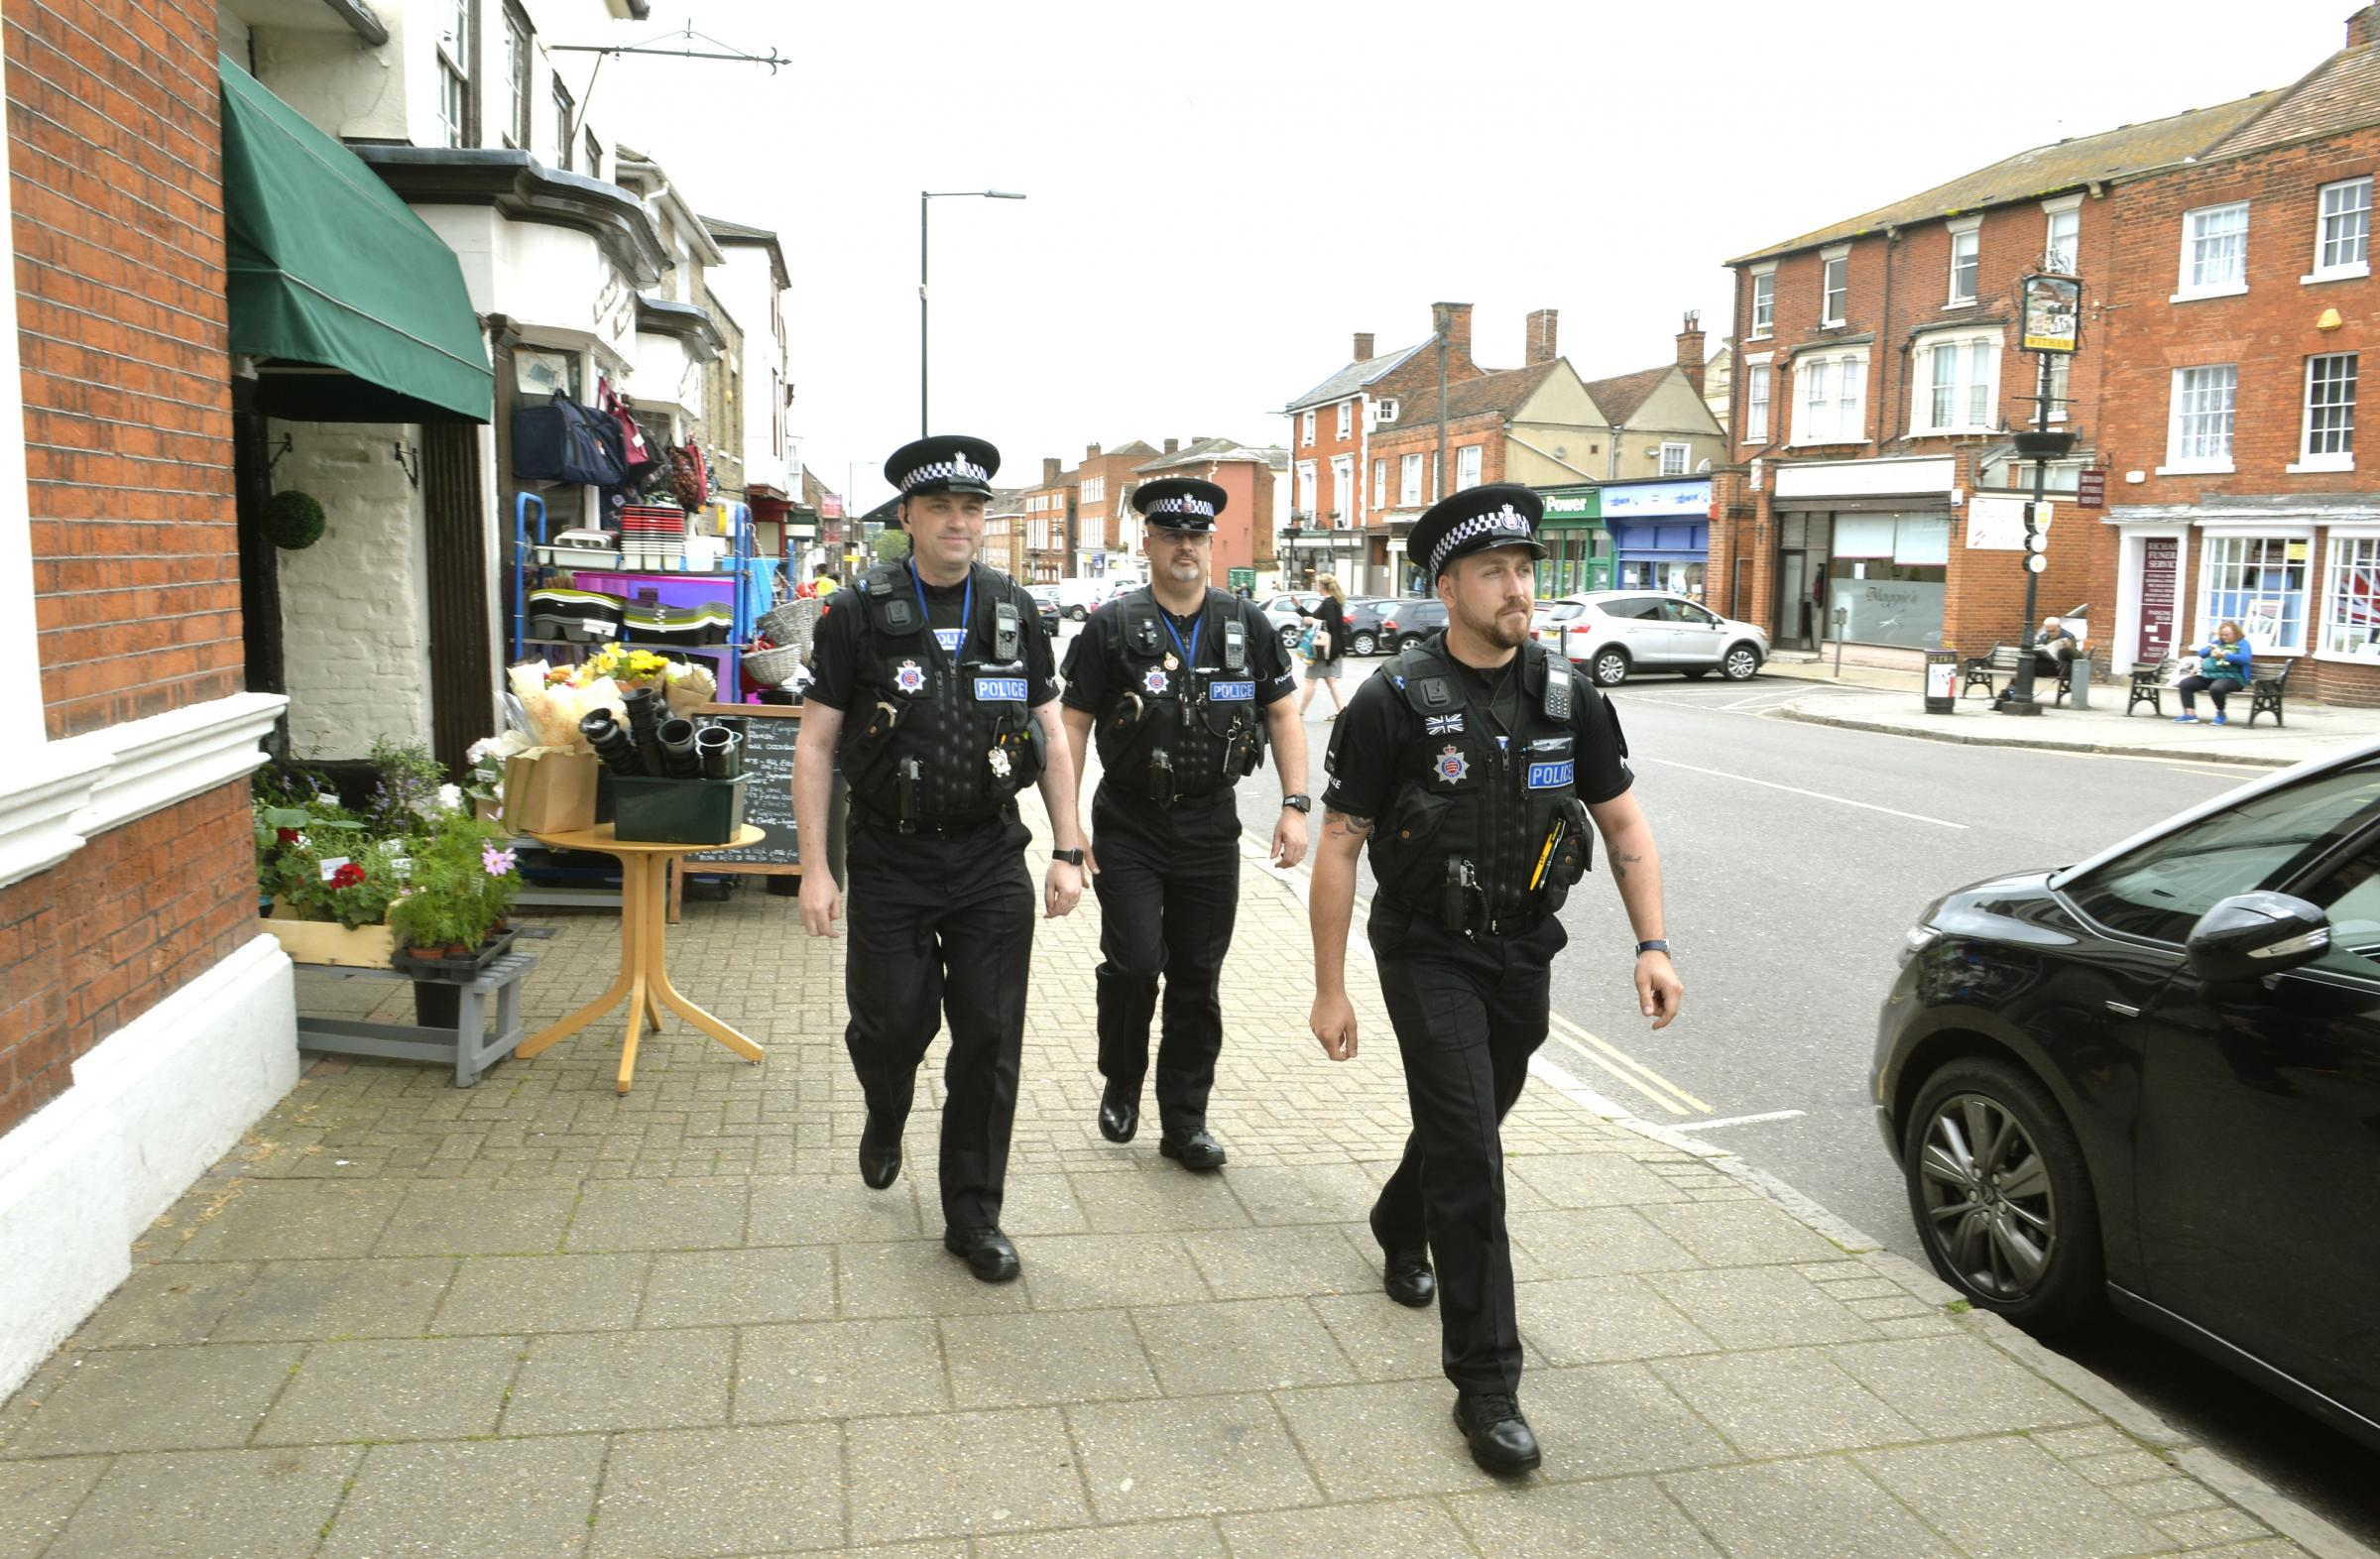 VOLUNTEERS: The specials scheme has successfully launched in Witham